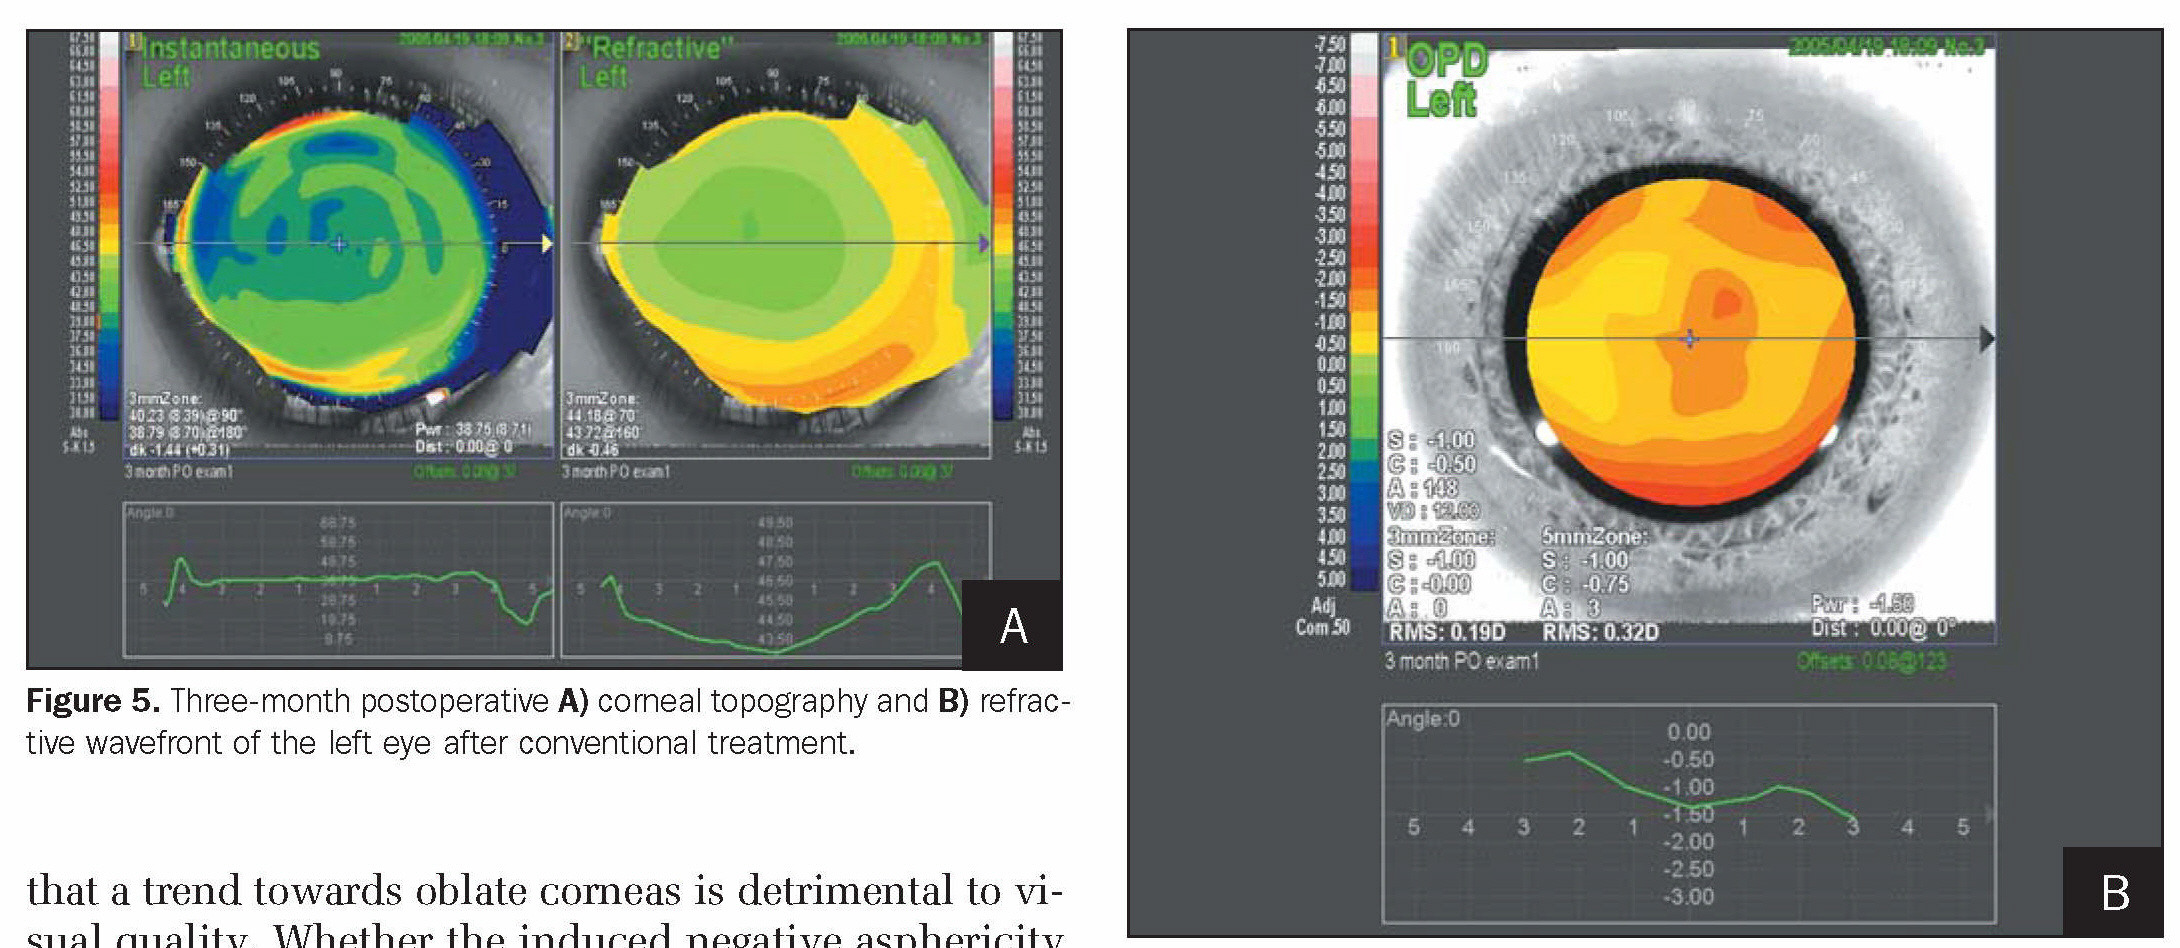 Figure 5. Three-month postoperative A) corneal topography and B) refractive wavefront of the left eye after conventional treatment.